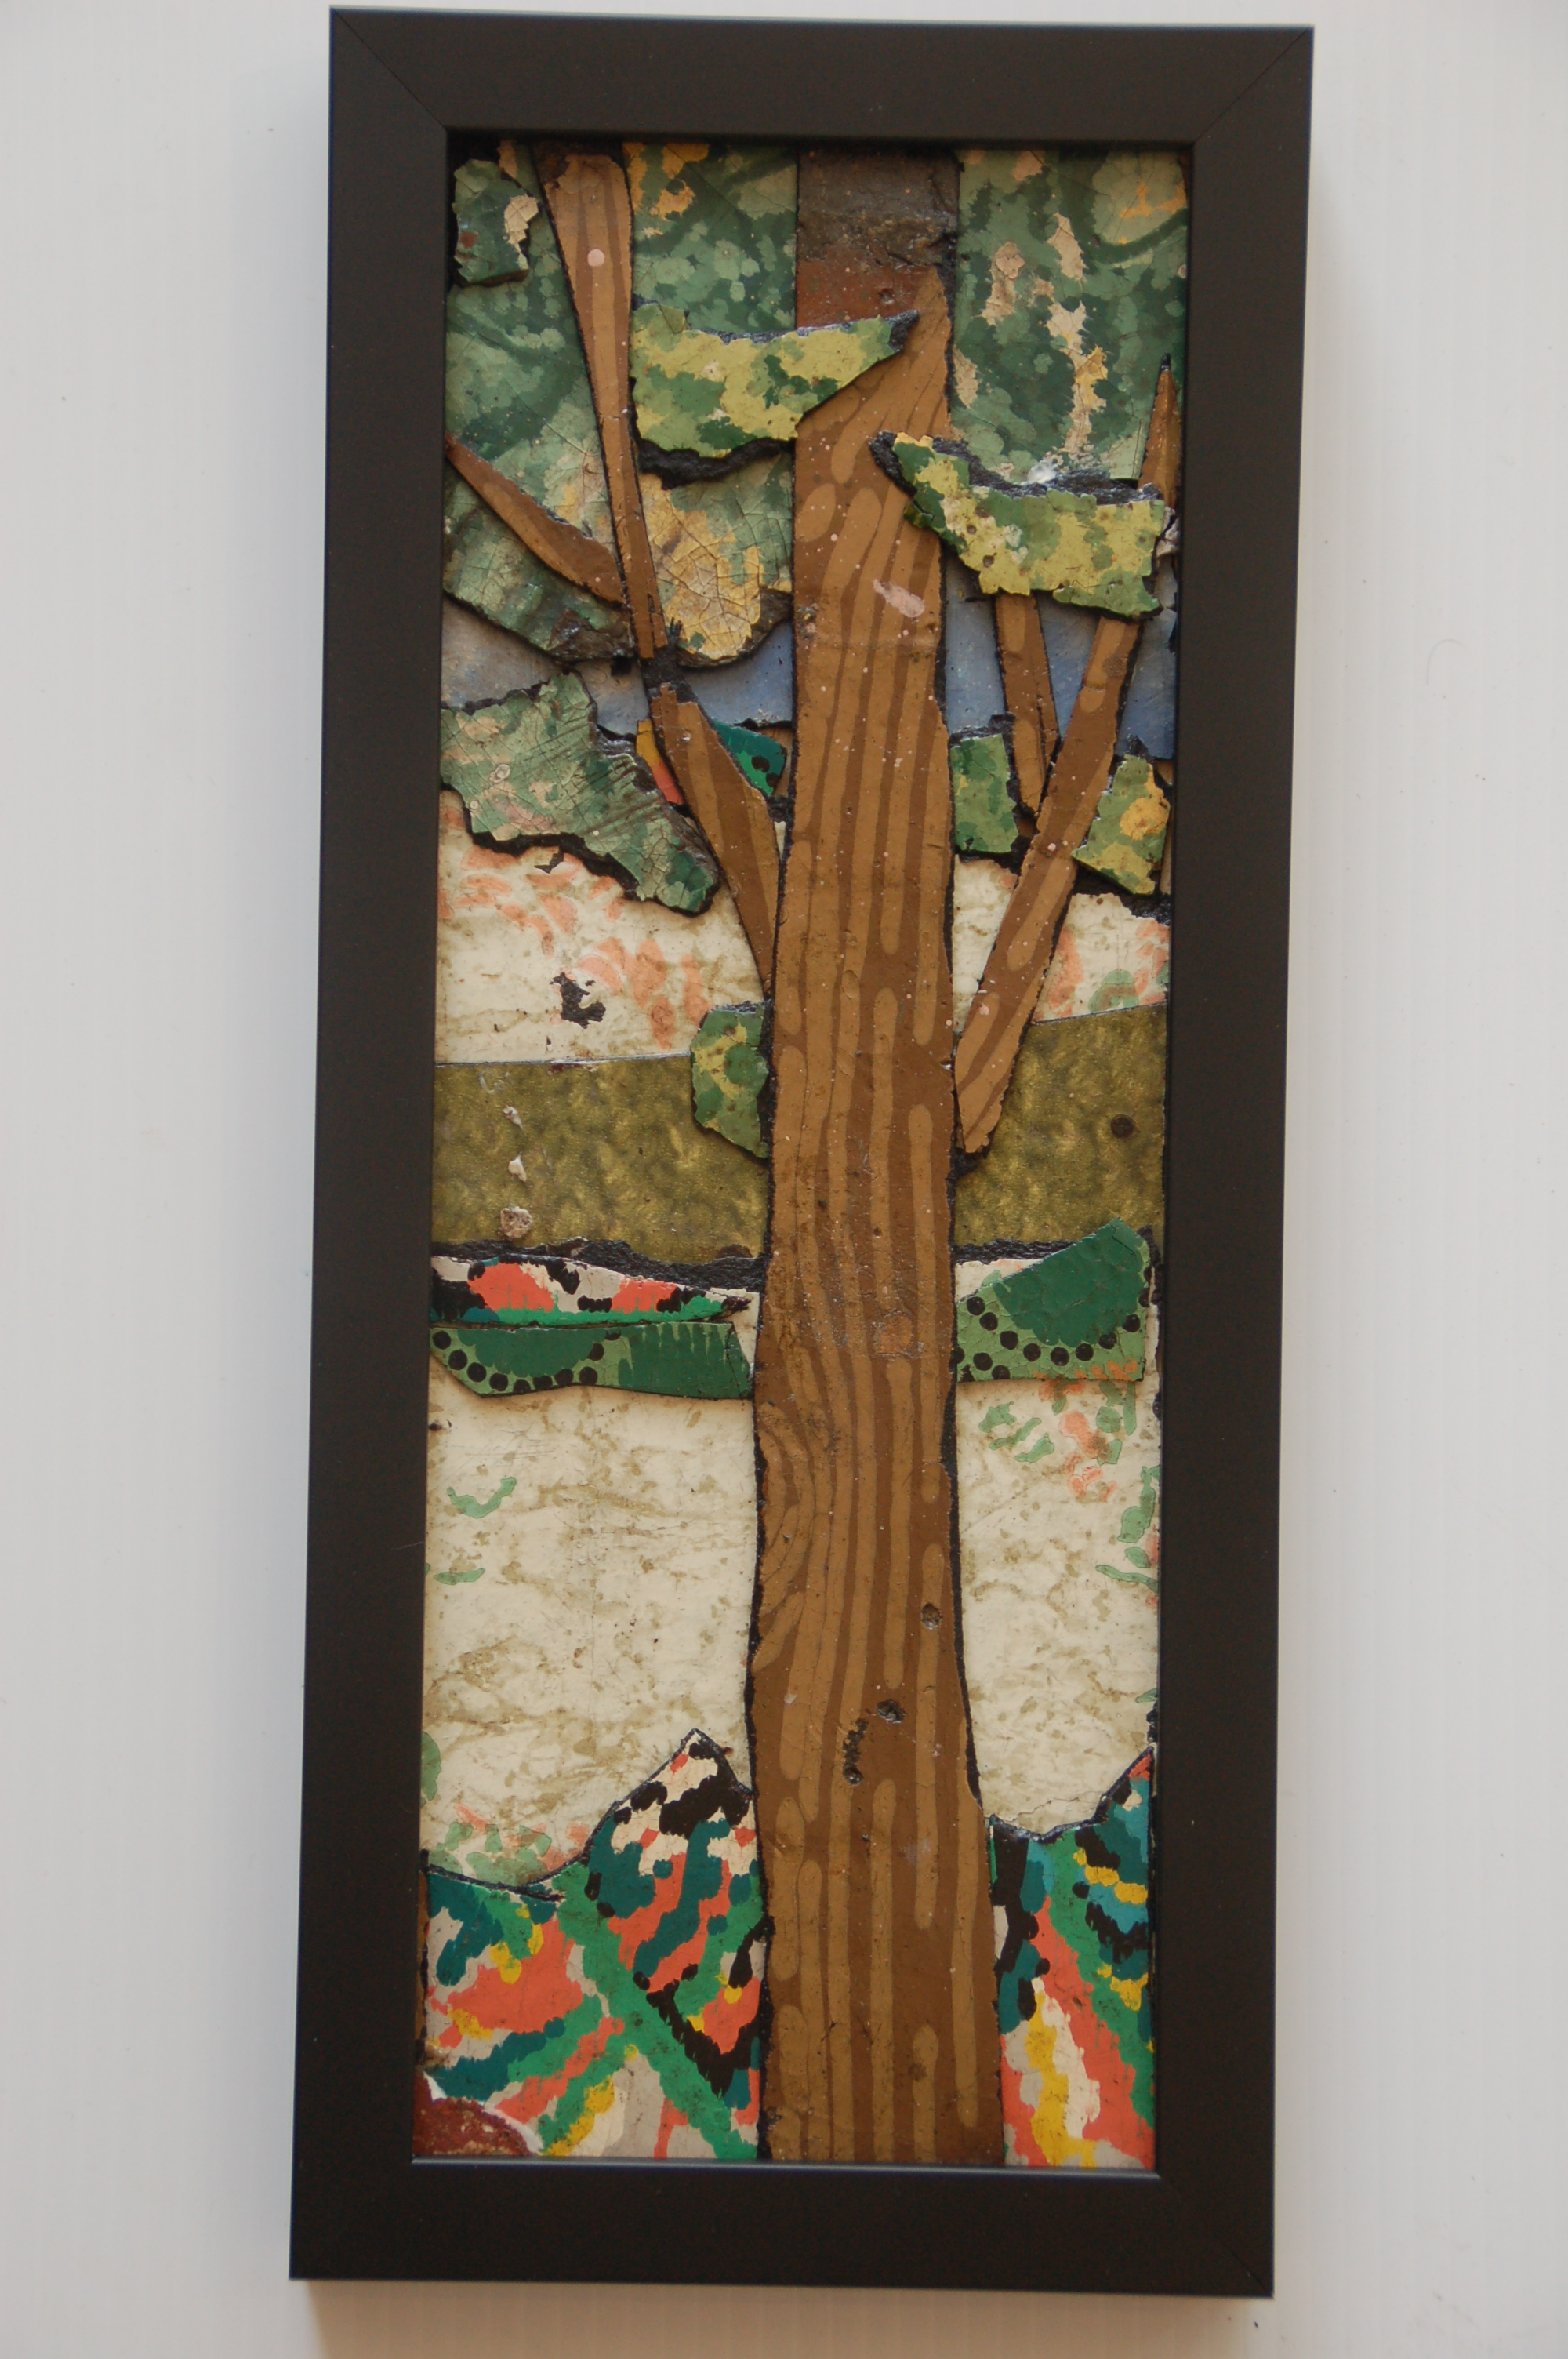 Bill Miller's Tree Study artwork